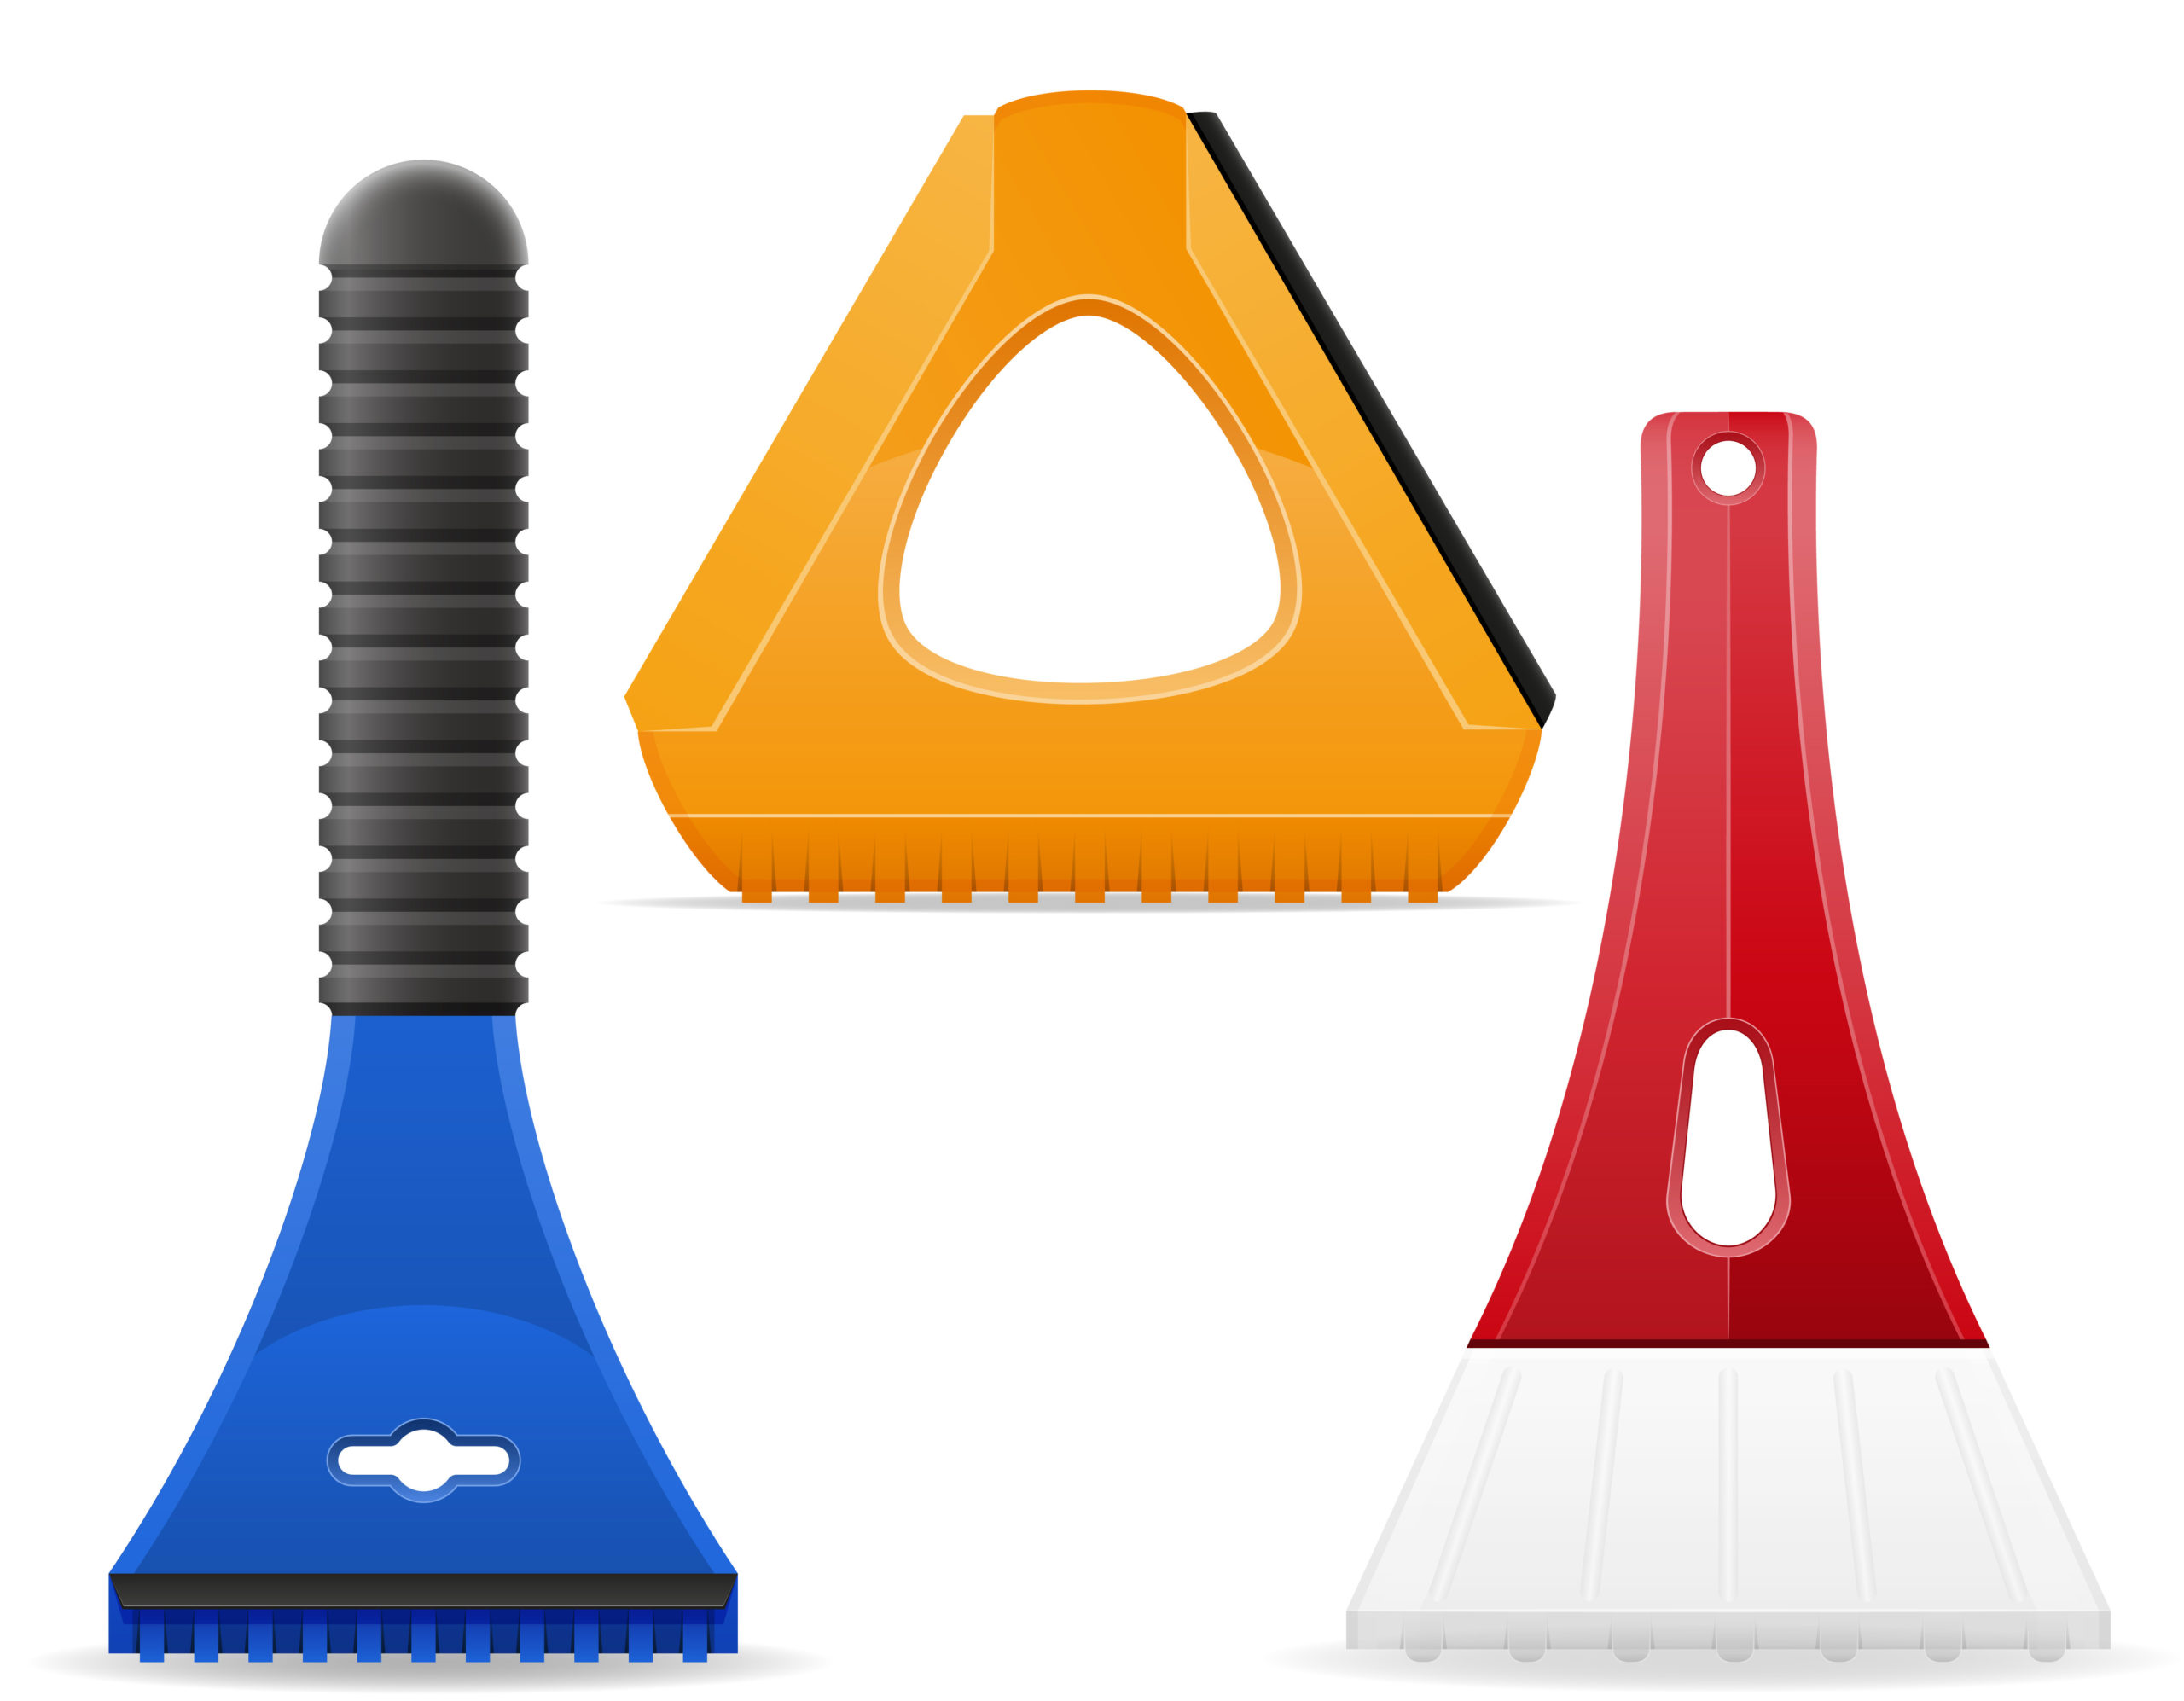 photo of three different ice scrapers, colored blue, yellow and red